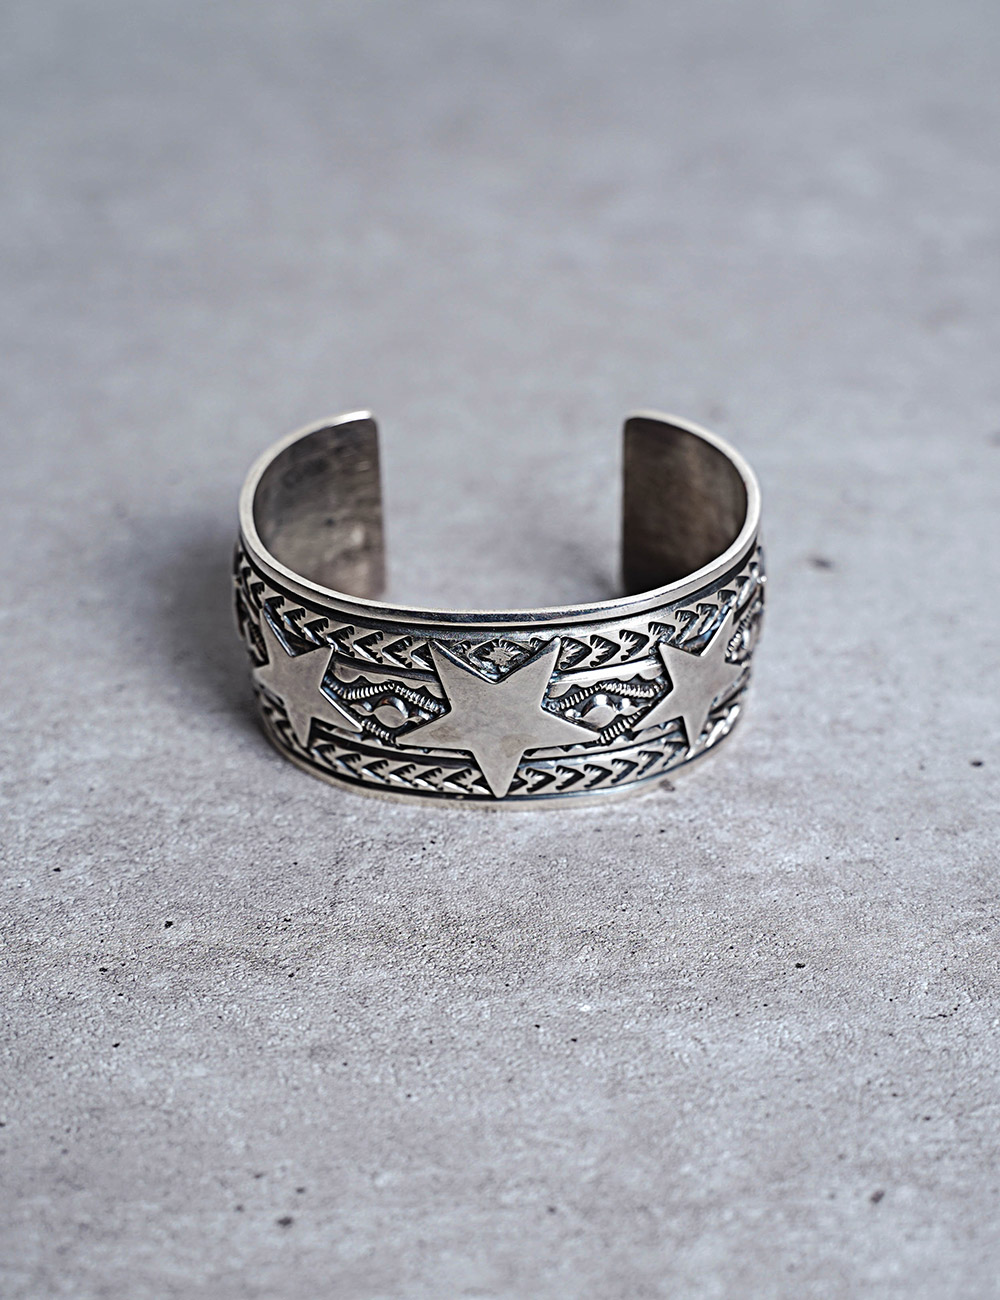 NATIVE AMERICAN JEWELRY : SUNSHINE REEVES - 5 STAR SILVER BRACELET